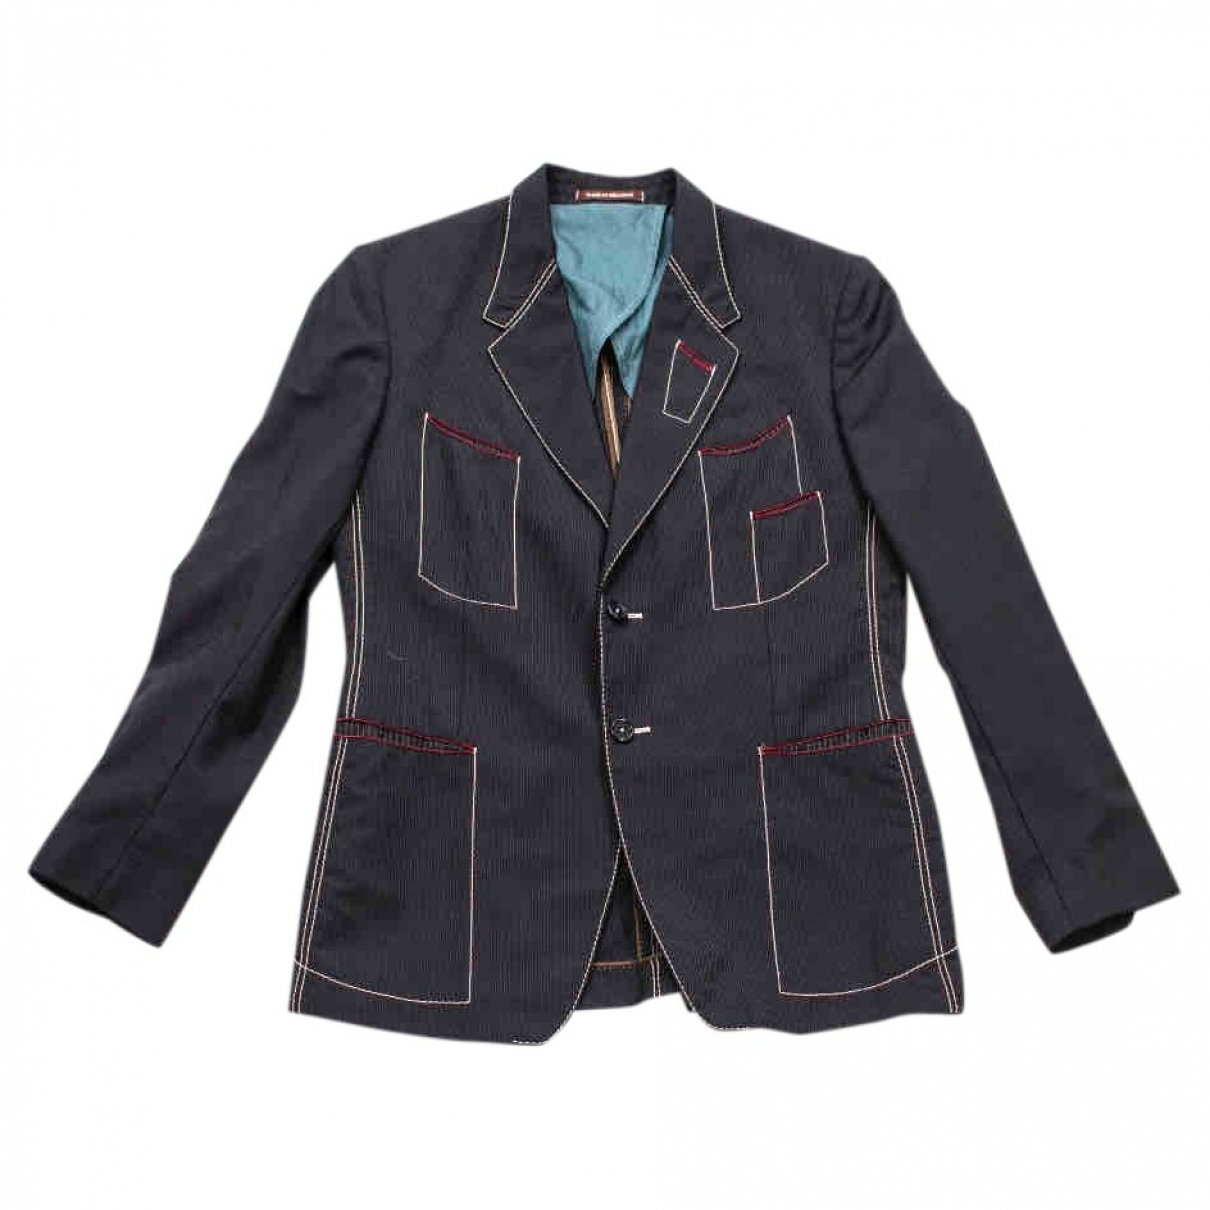 Paul Smith \N Black jacket  for Men 50 FR